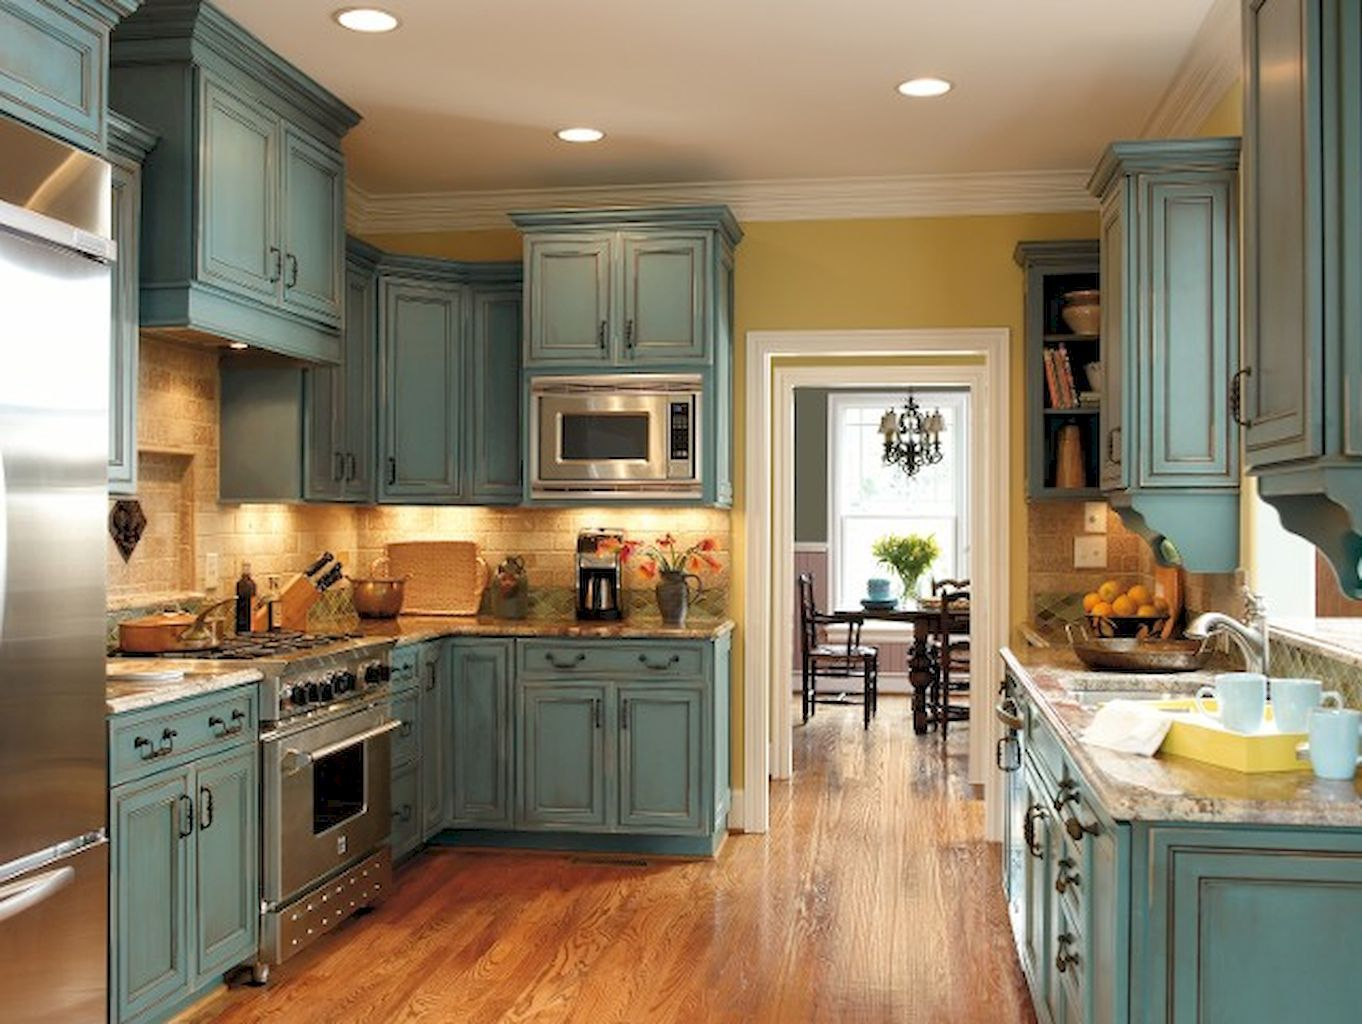 90 Rustic Kitchen Cabinets Farmhouse Style Ideas (5 ...